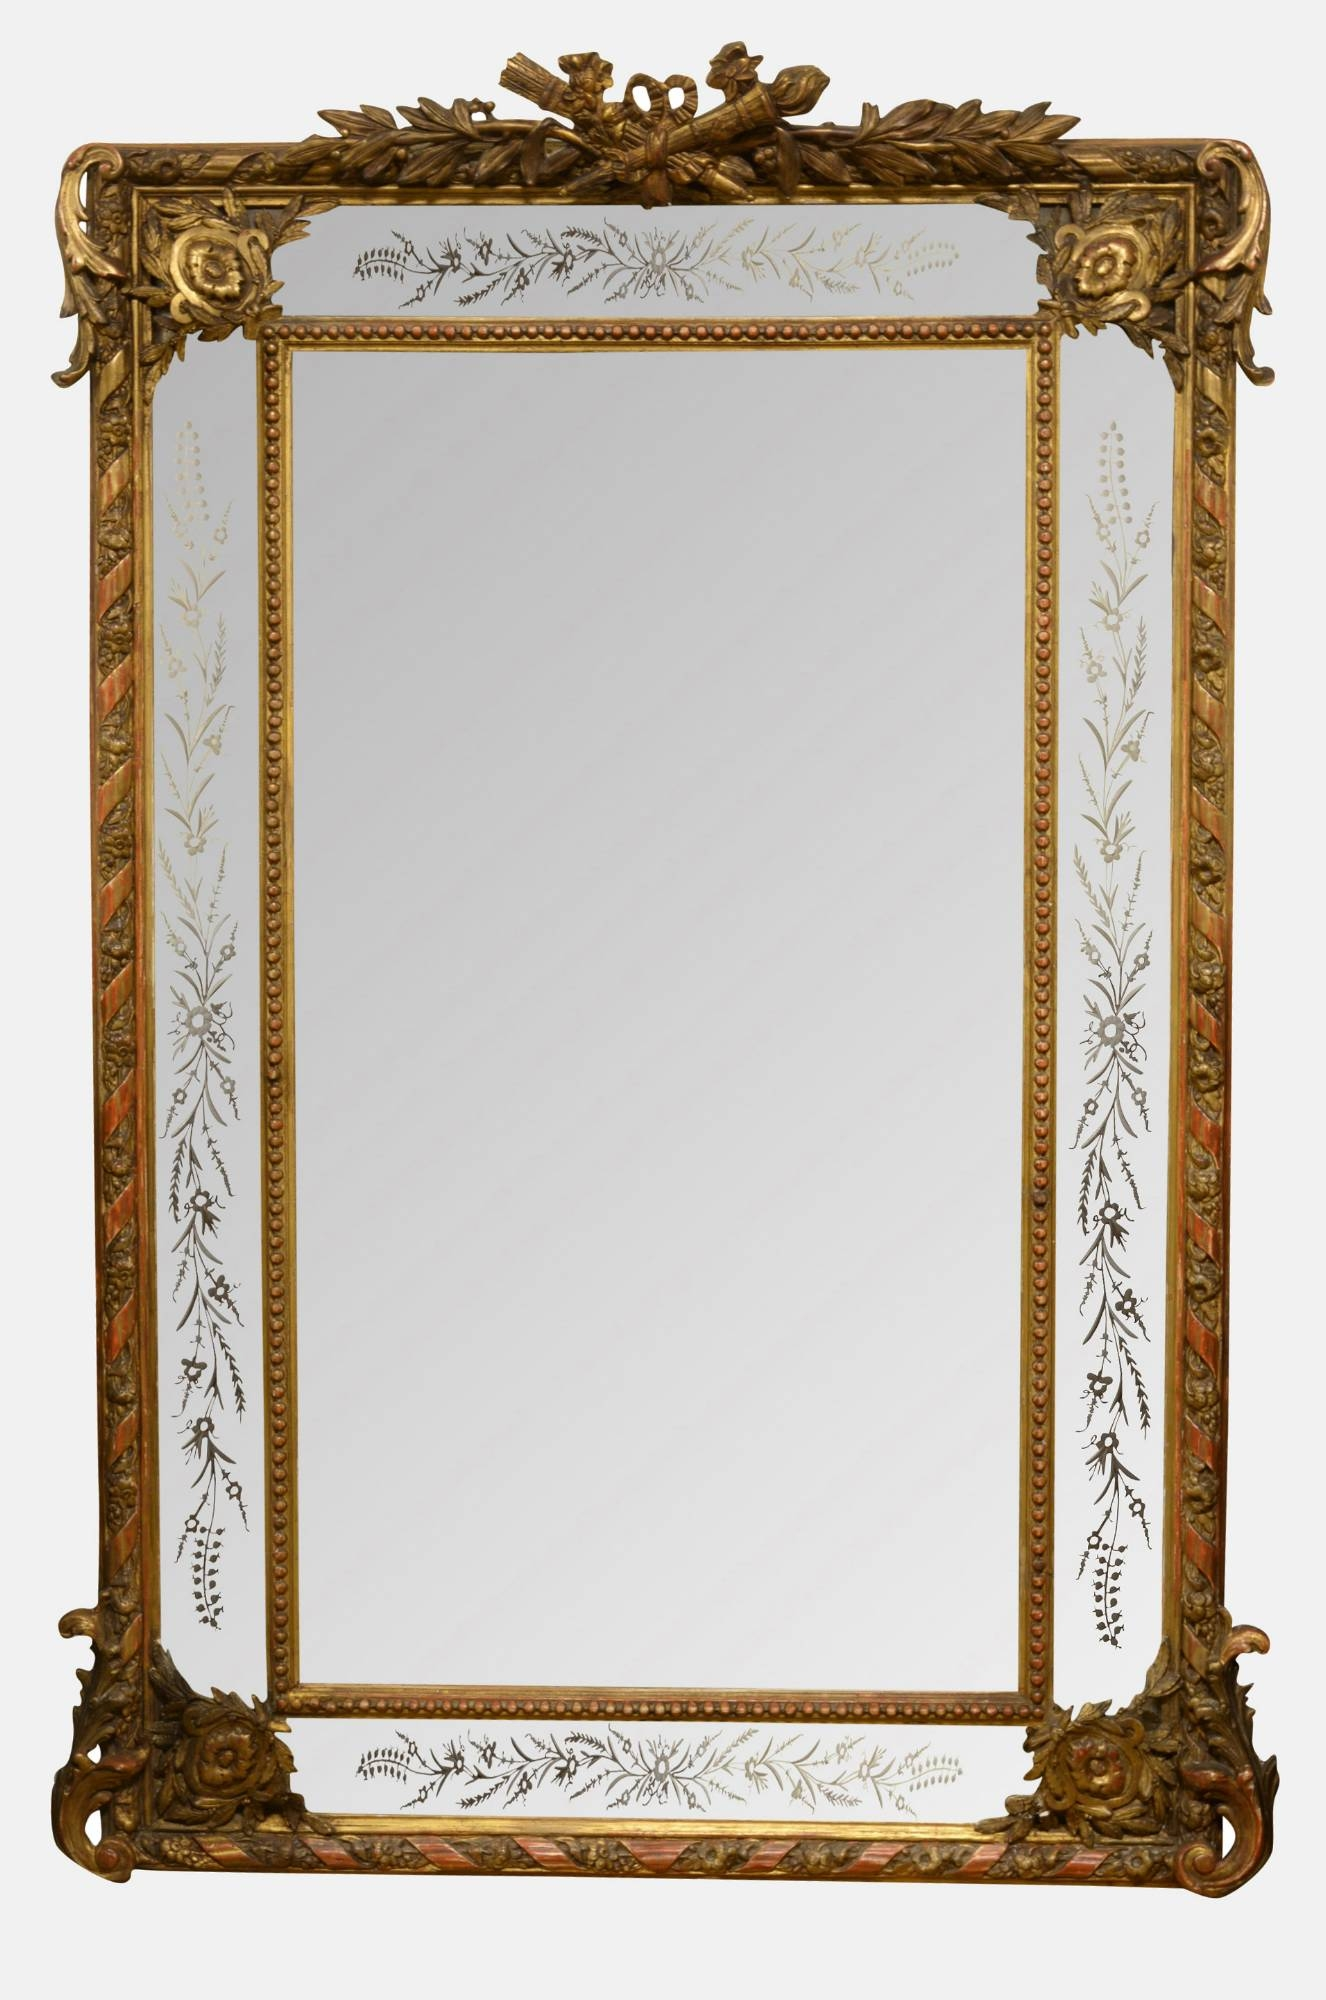 Large 19th Century French Gilt Framed Mirror C1880 Regarding Gilt Framed Mirror (Image 10 of 15)